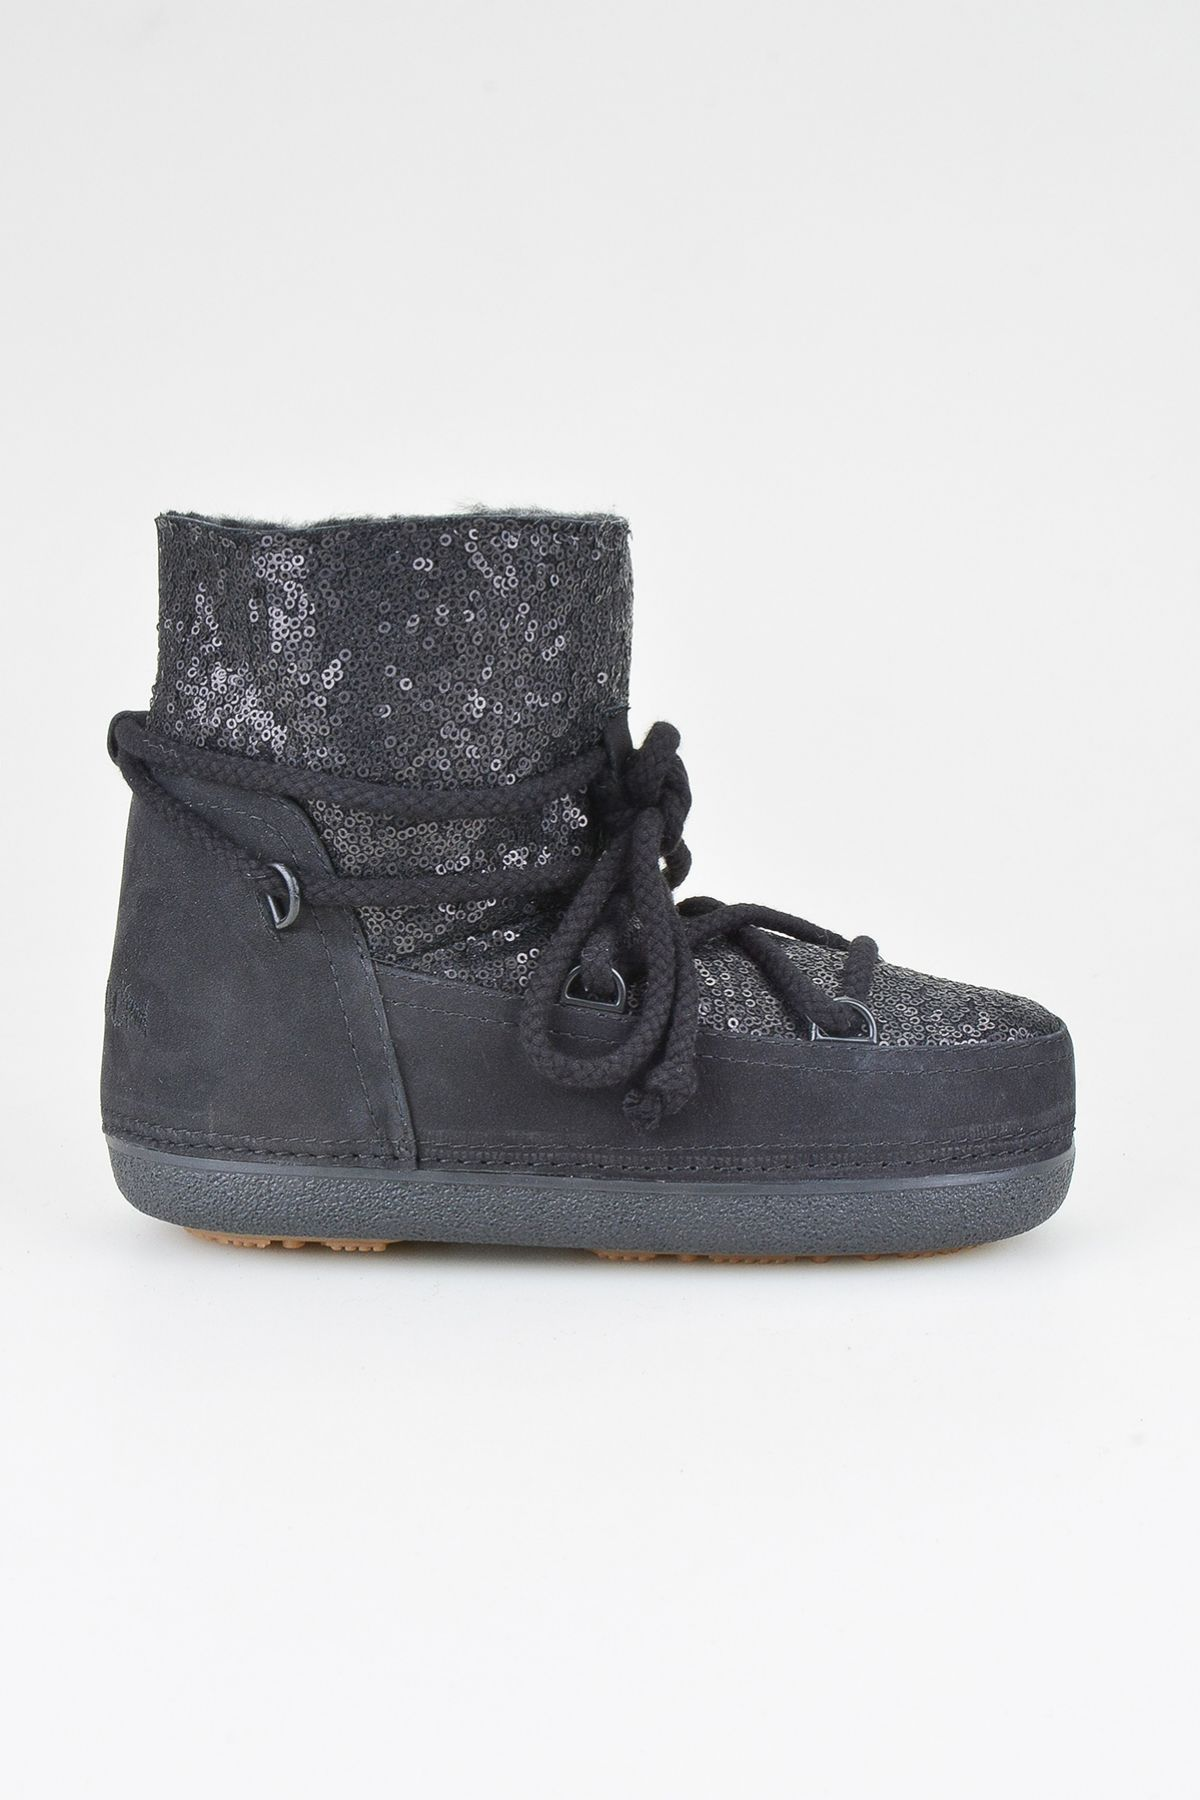 Cool Moon Women Snowboots From Genuine Fur With Sequins 251004 Black